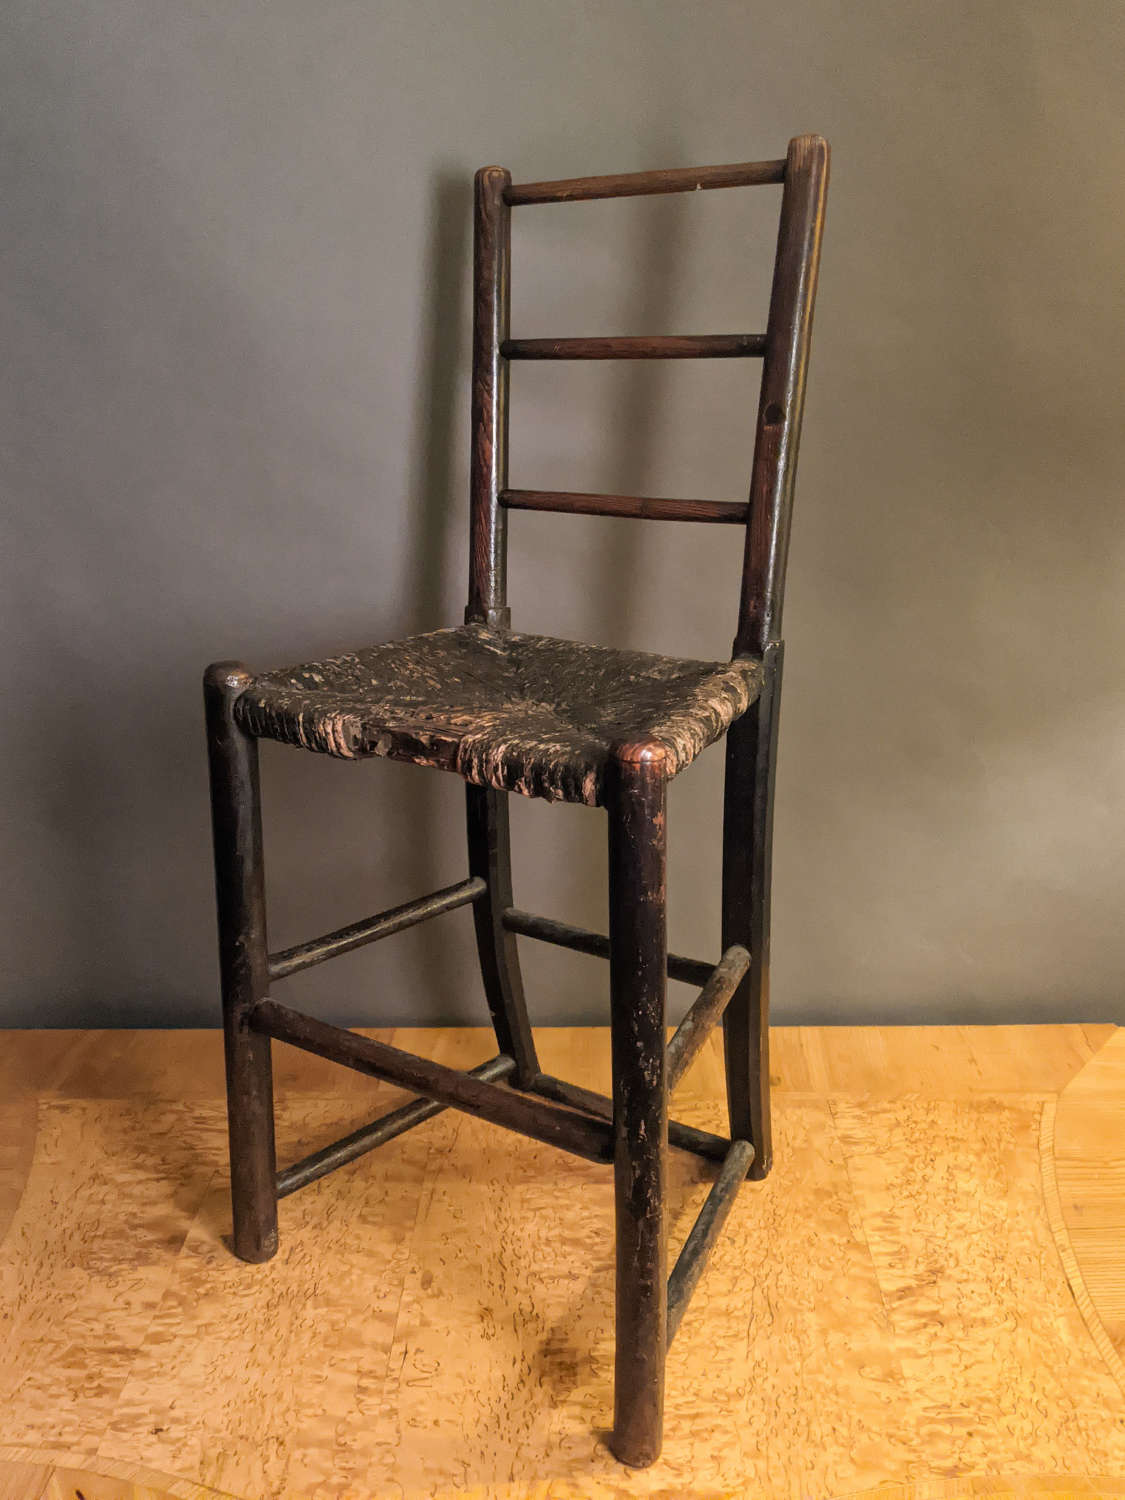 Circa 1850 A Child's Chair